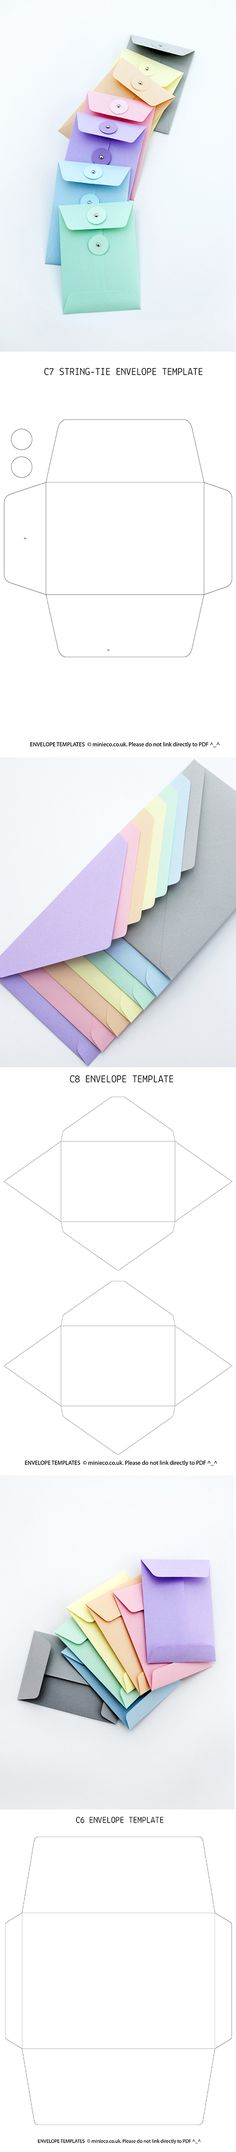 Who doesn't like a pretty matching envelope? These Free Envelope Templates some String-tie & standard designs. I love the string-tie! Diy Paper, Paper Crafts, Diy Crafts, Decor Crafts, Diy Projects To Try, Craft Projects, Ideias Diy, Envelope Templates, Envelope Design